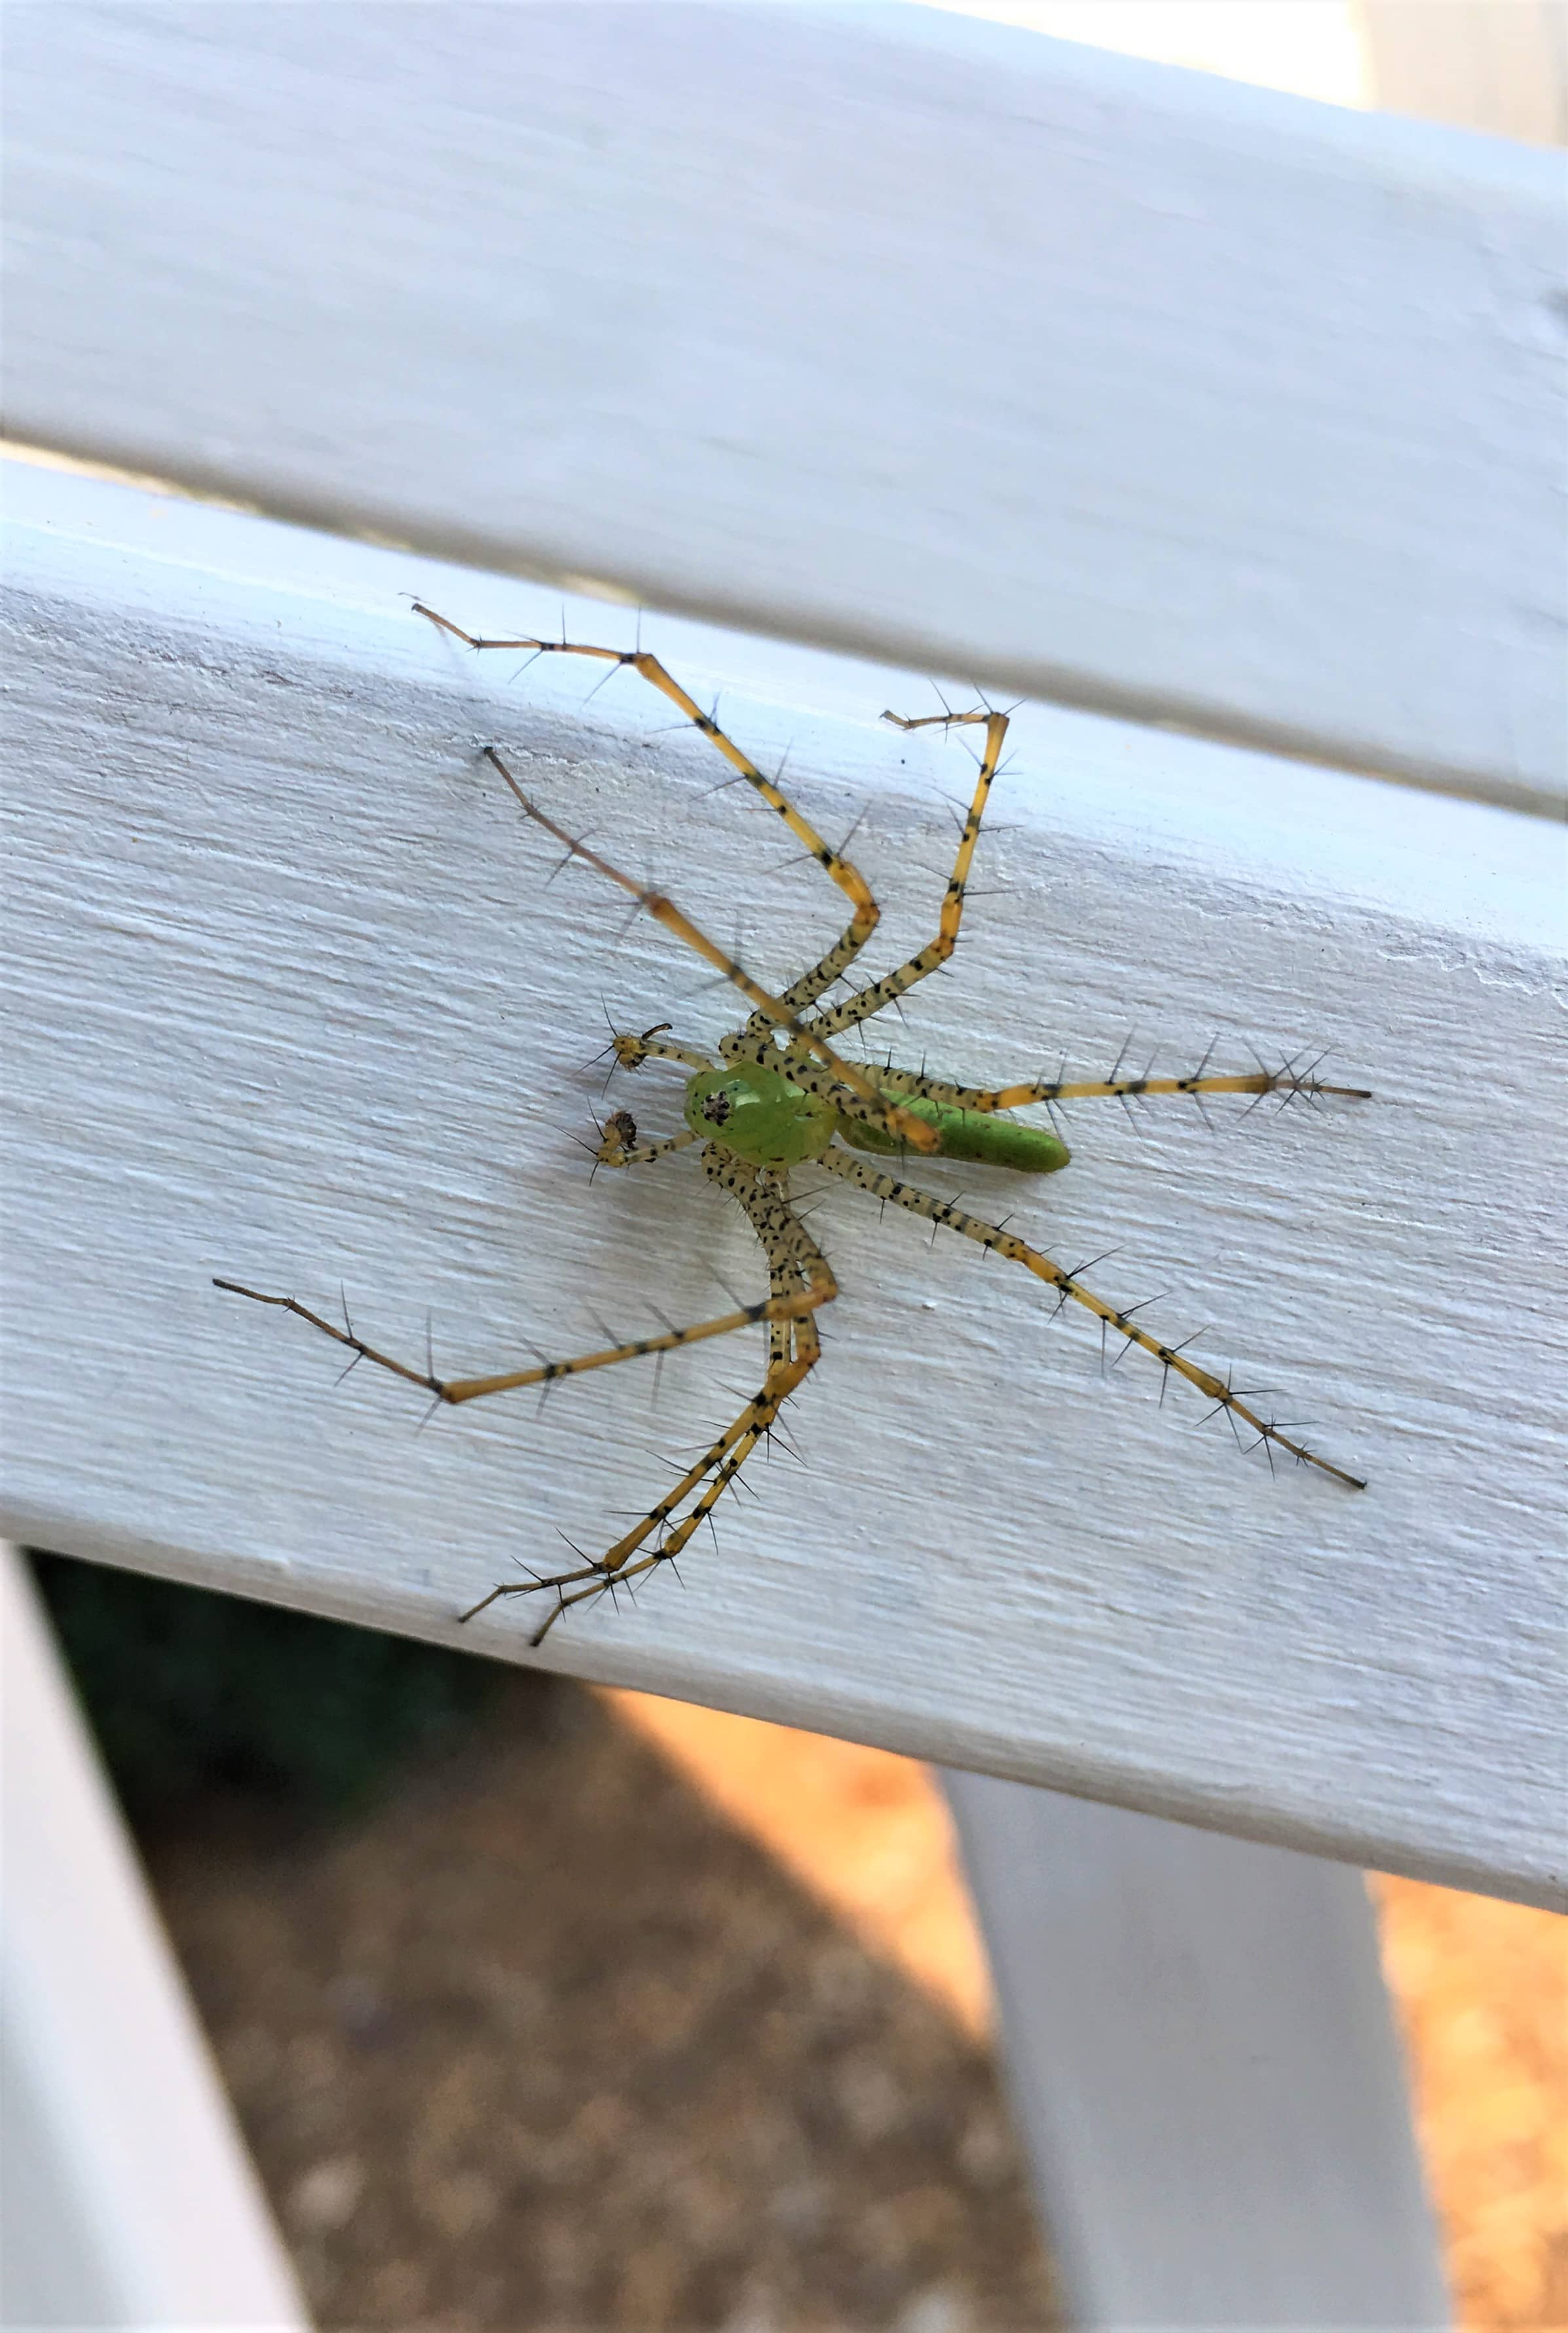 Picture of Peucetia viridans (Green Lynx Spider) - Male - Dorsal,Eyes